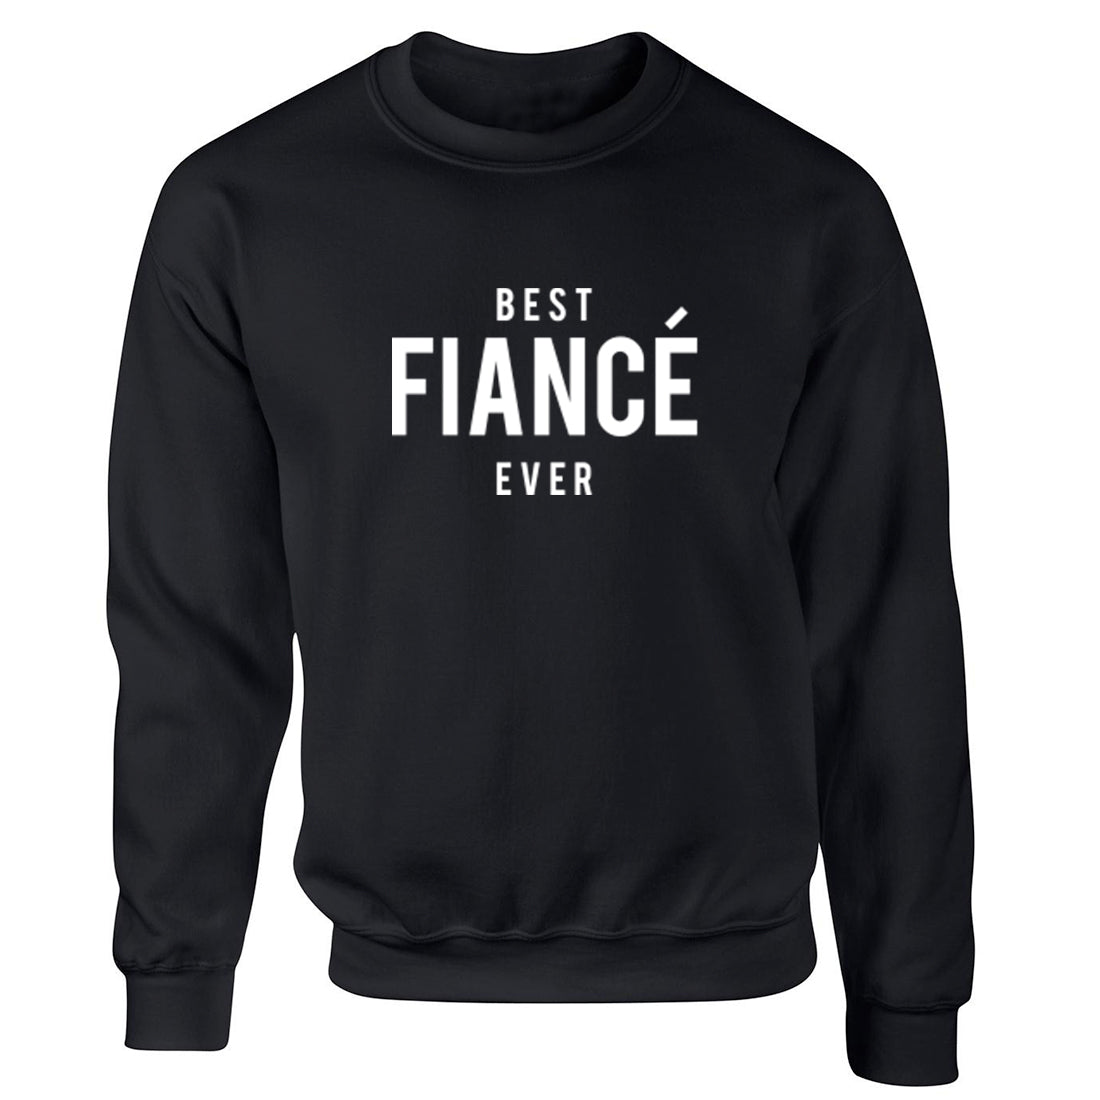 Best Fiance Ever Unisex Jumper K1475 - Illustrated Identity Ltd.